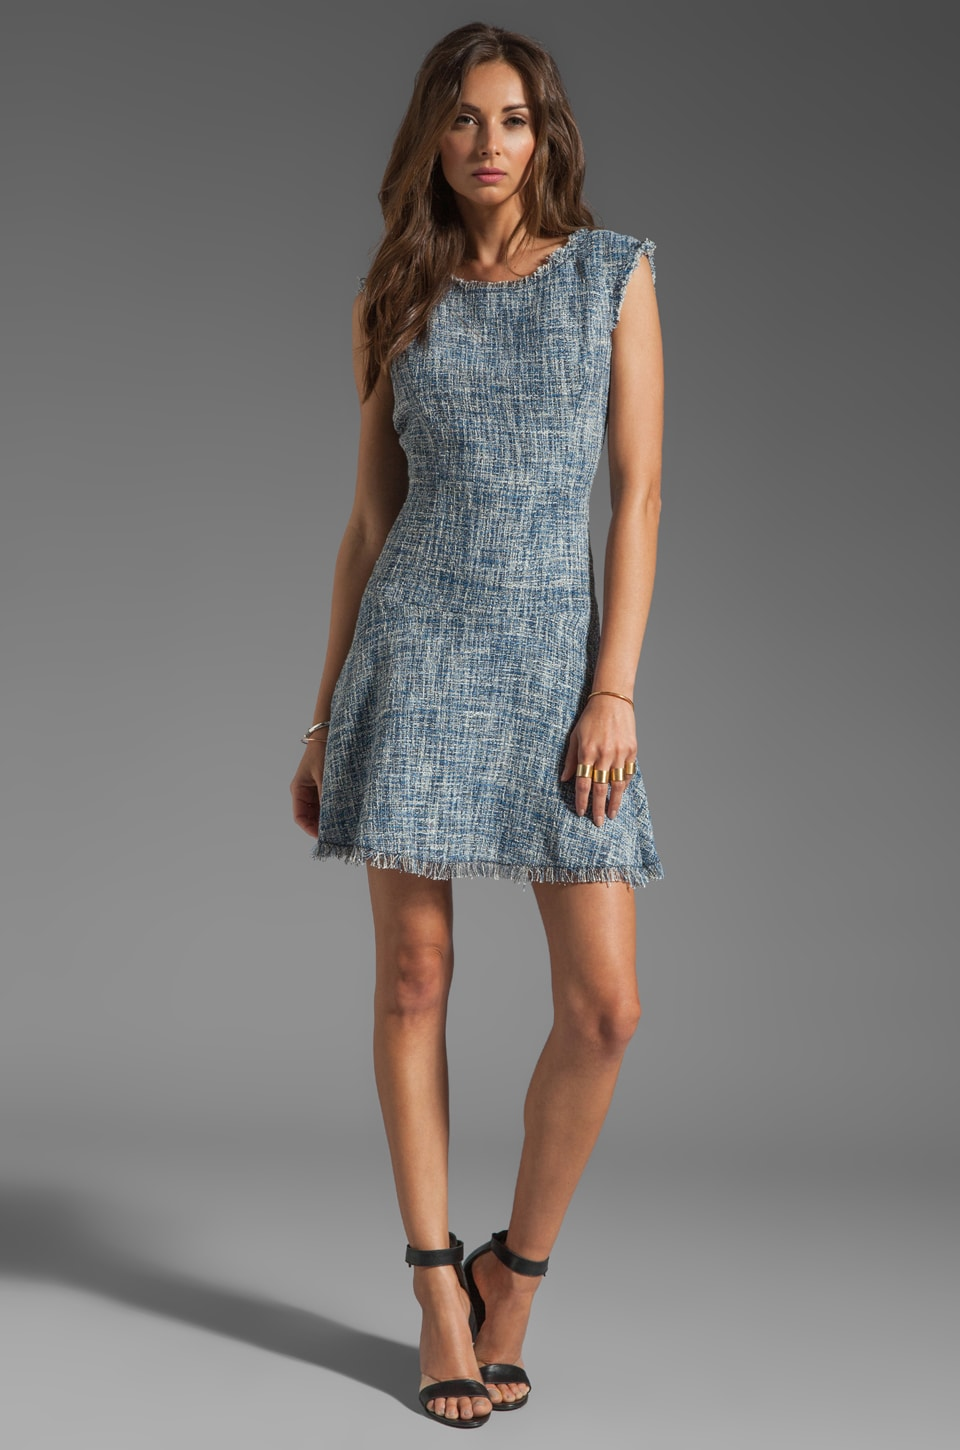 Rebecca Taylor Frayed Fit & Flared Dress in Navy